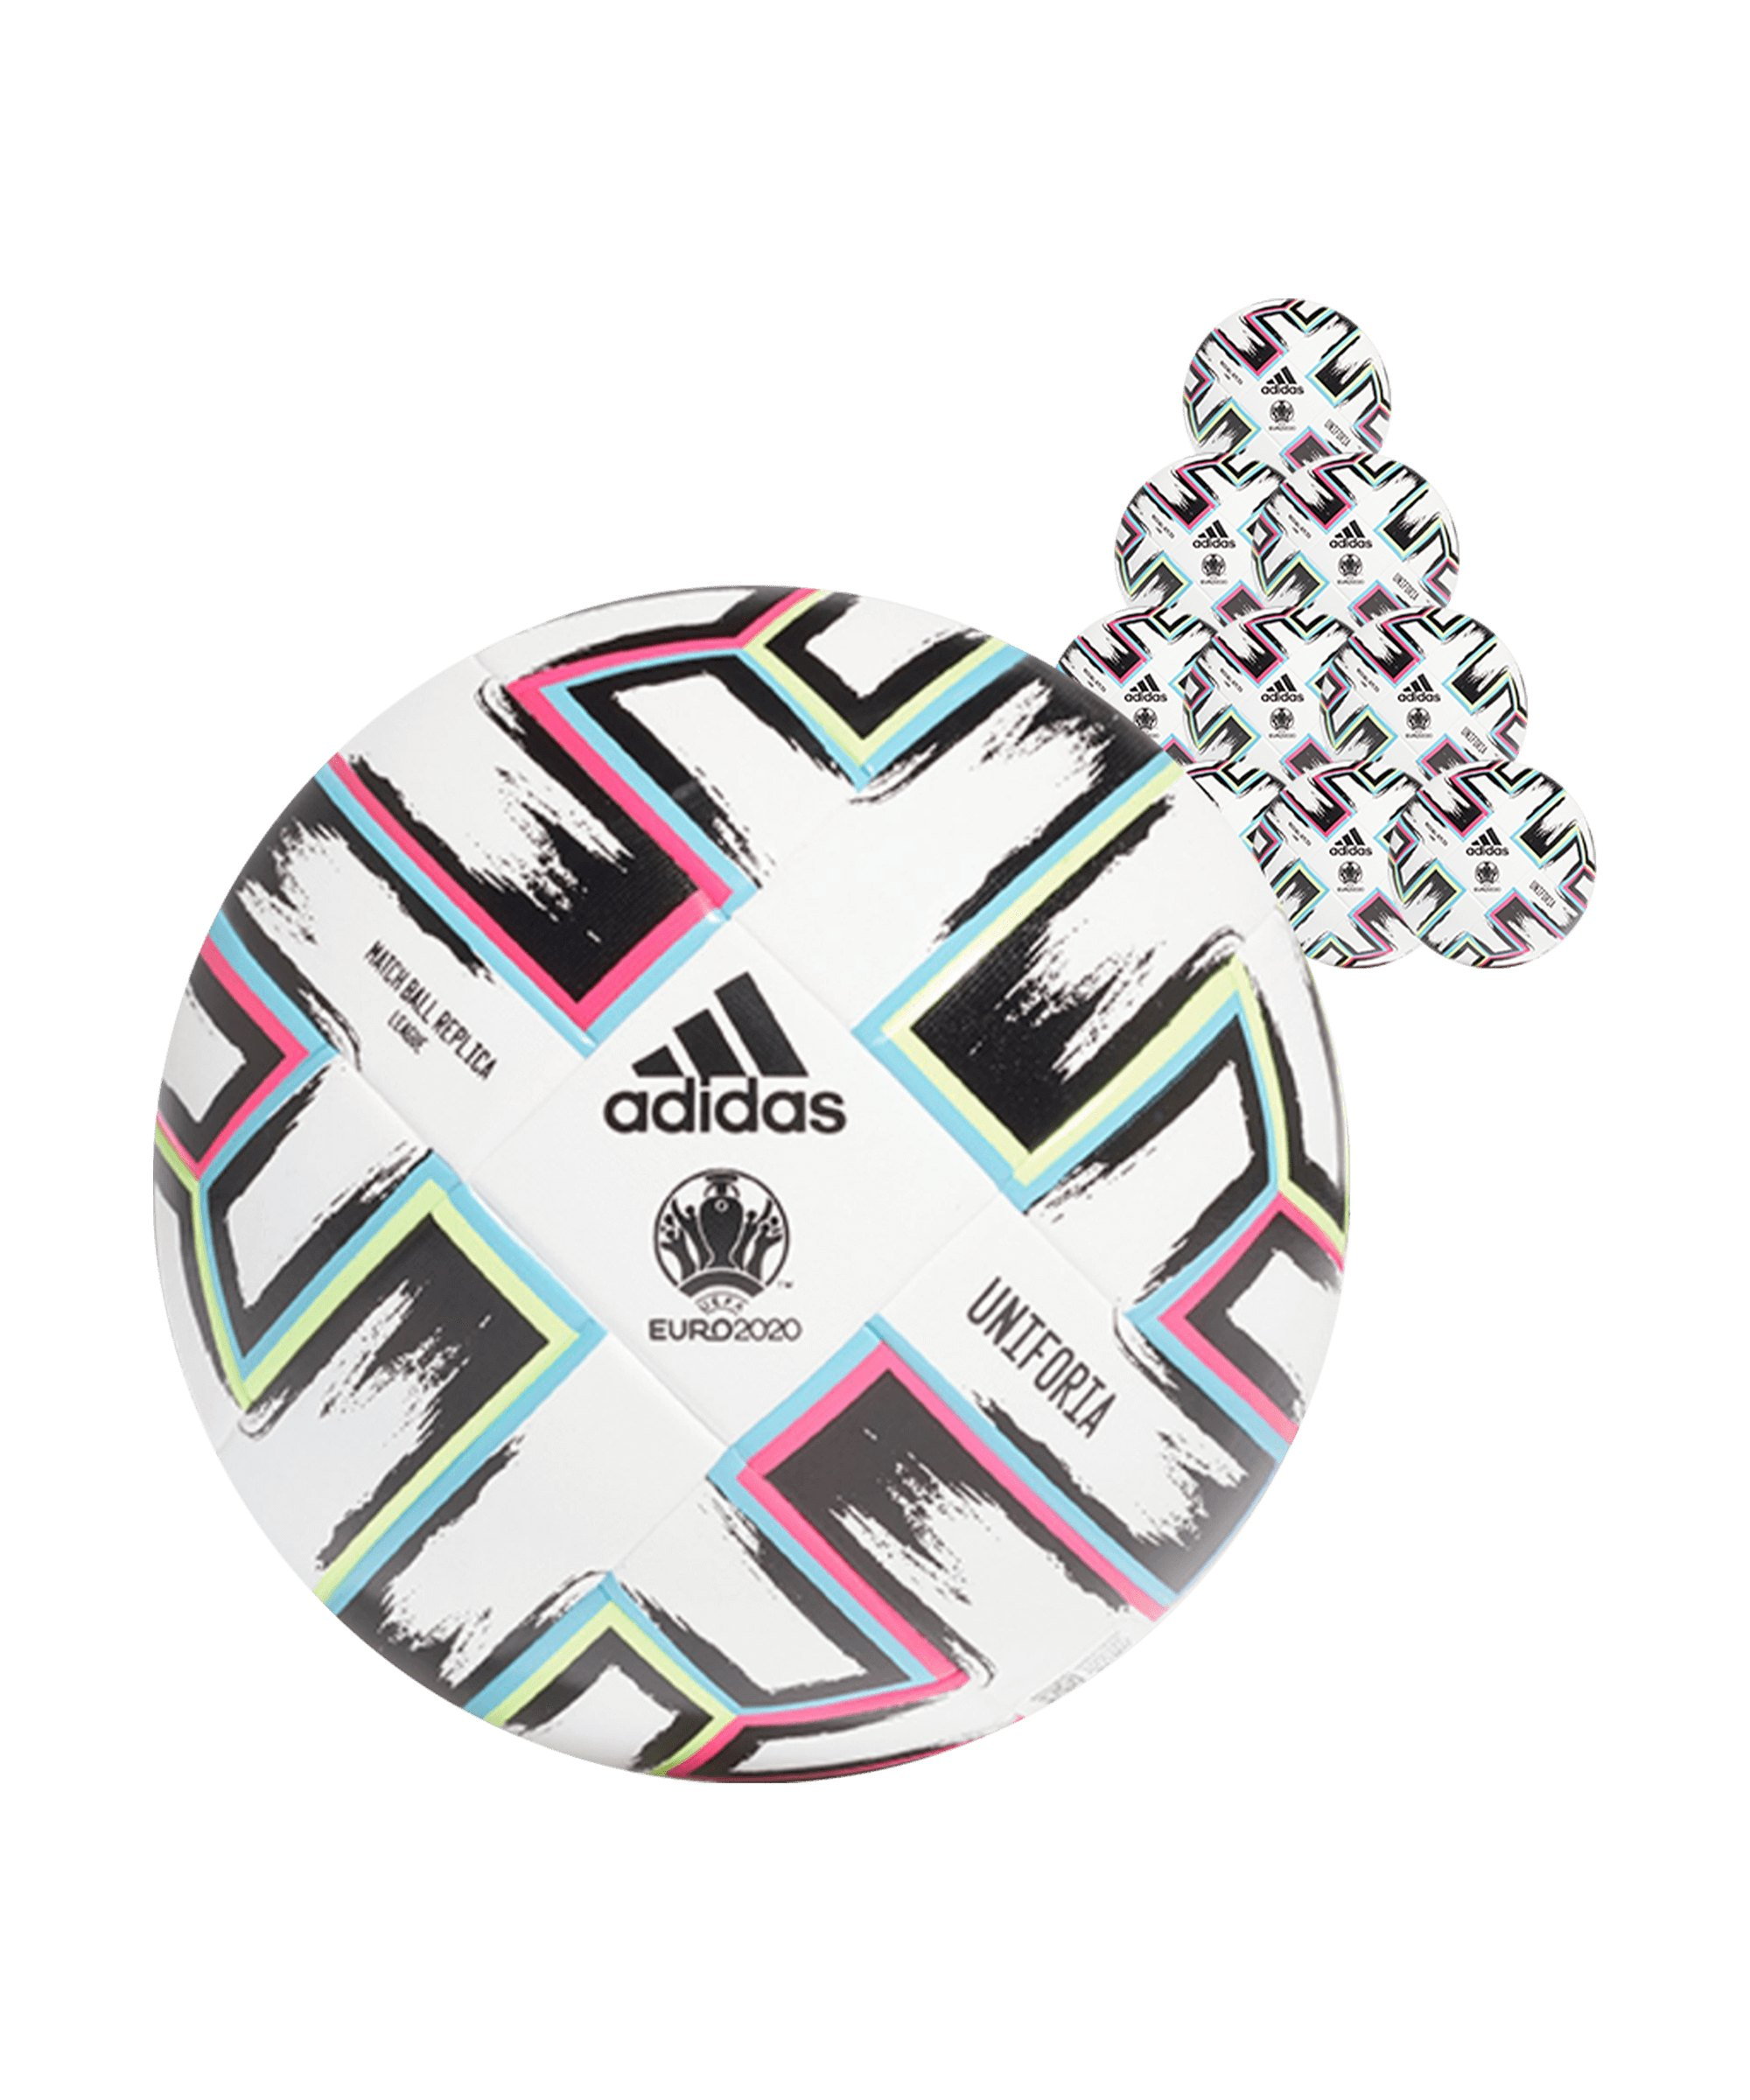 adidas LGE Uniforia Trainingsball 20x Gr. 5 Weiss - weiss